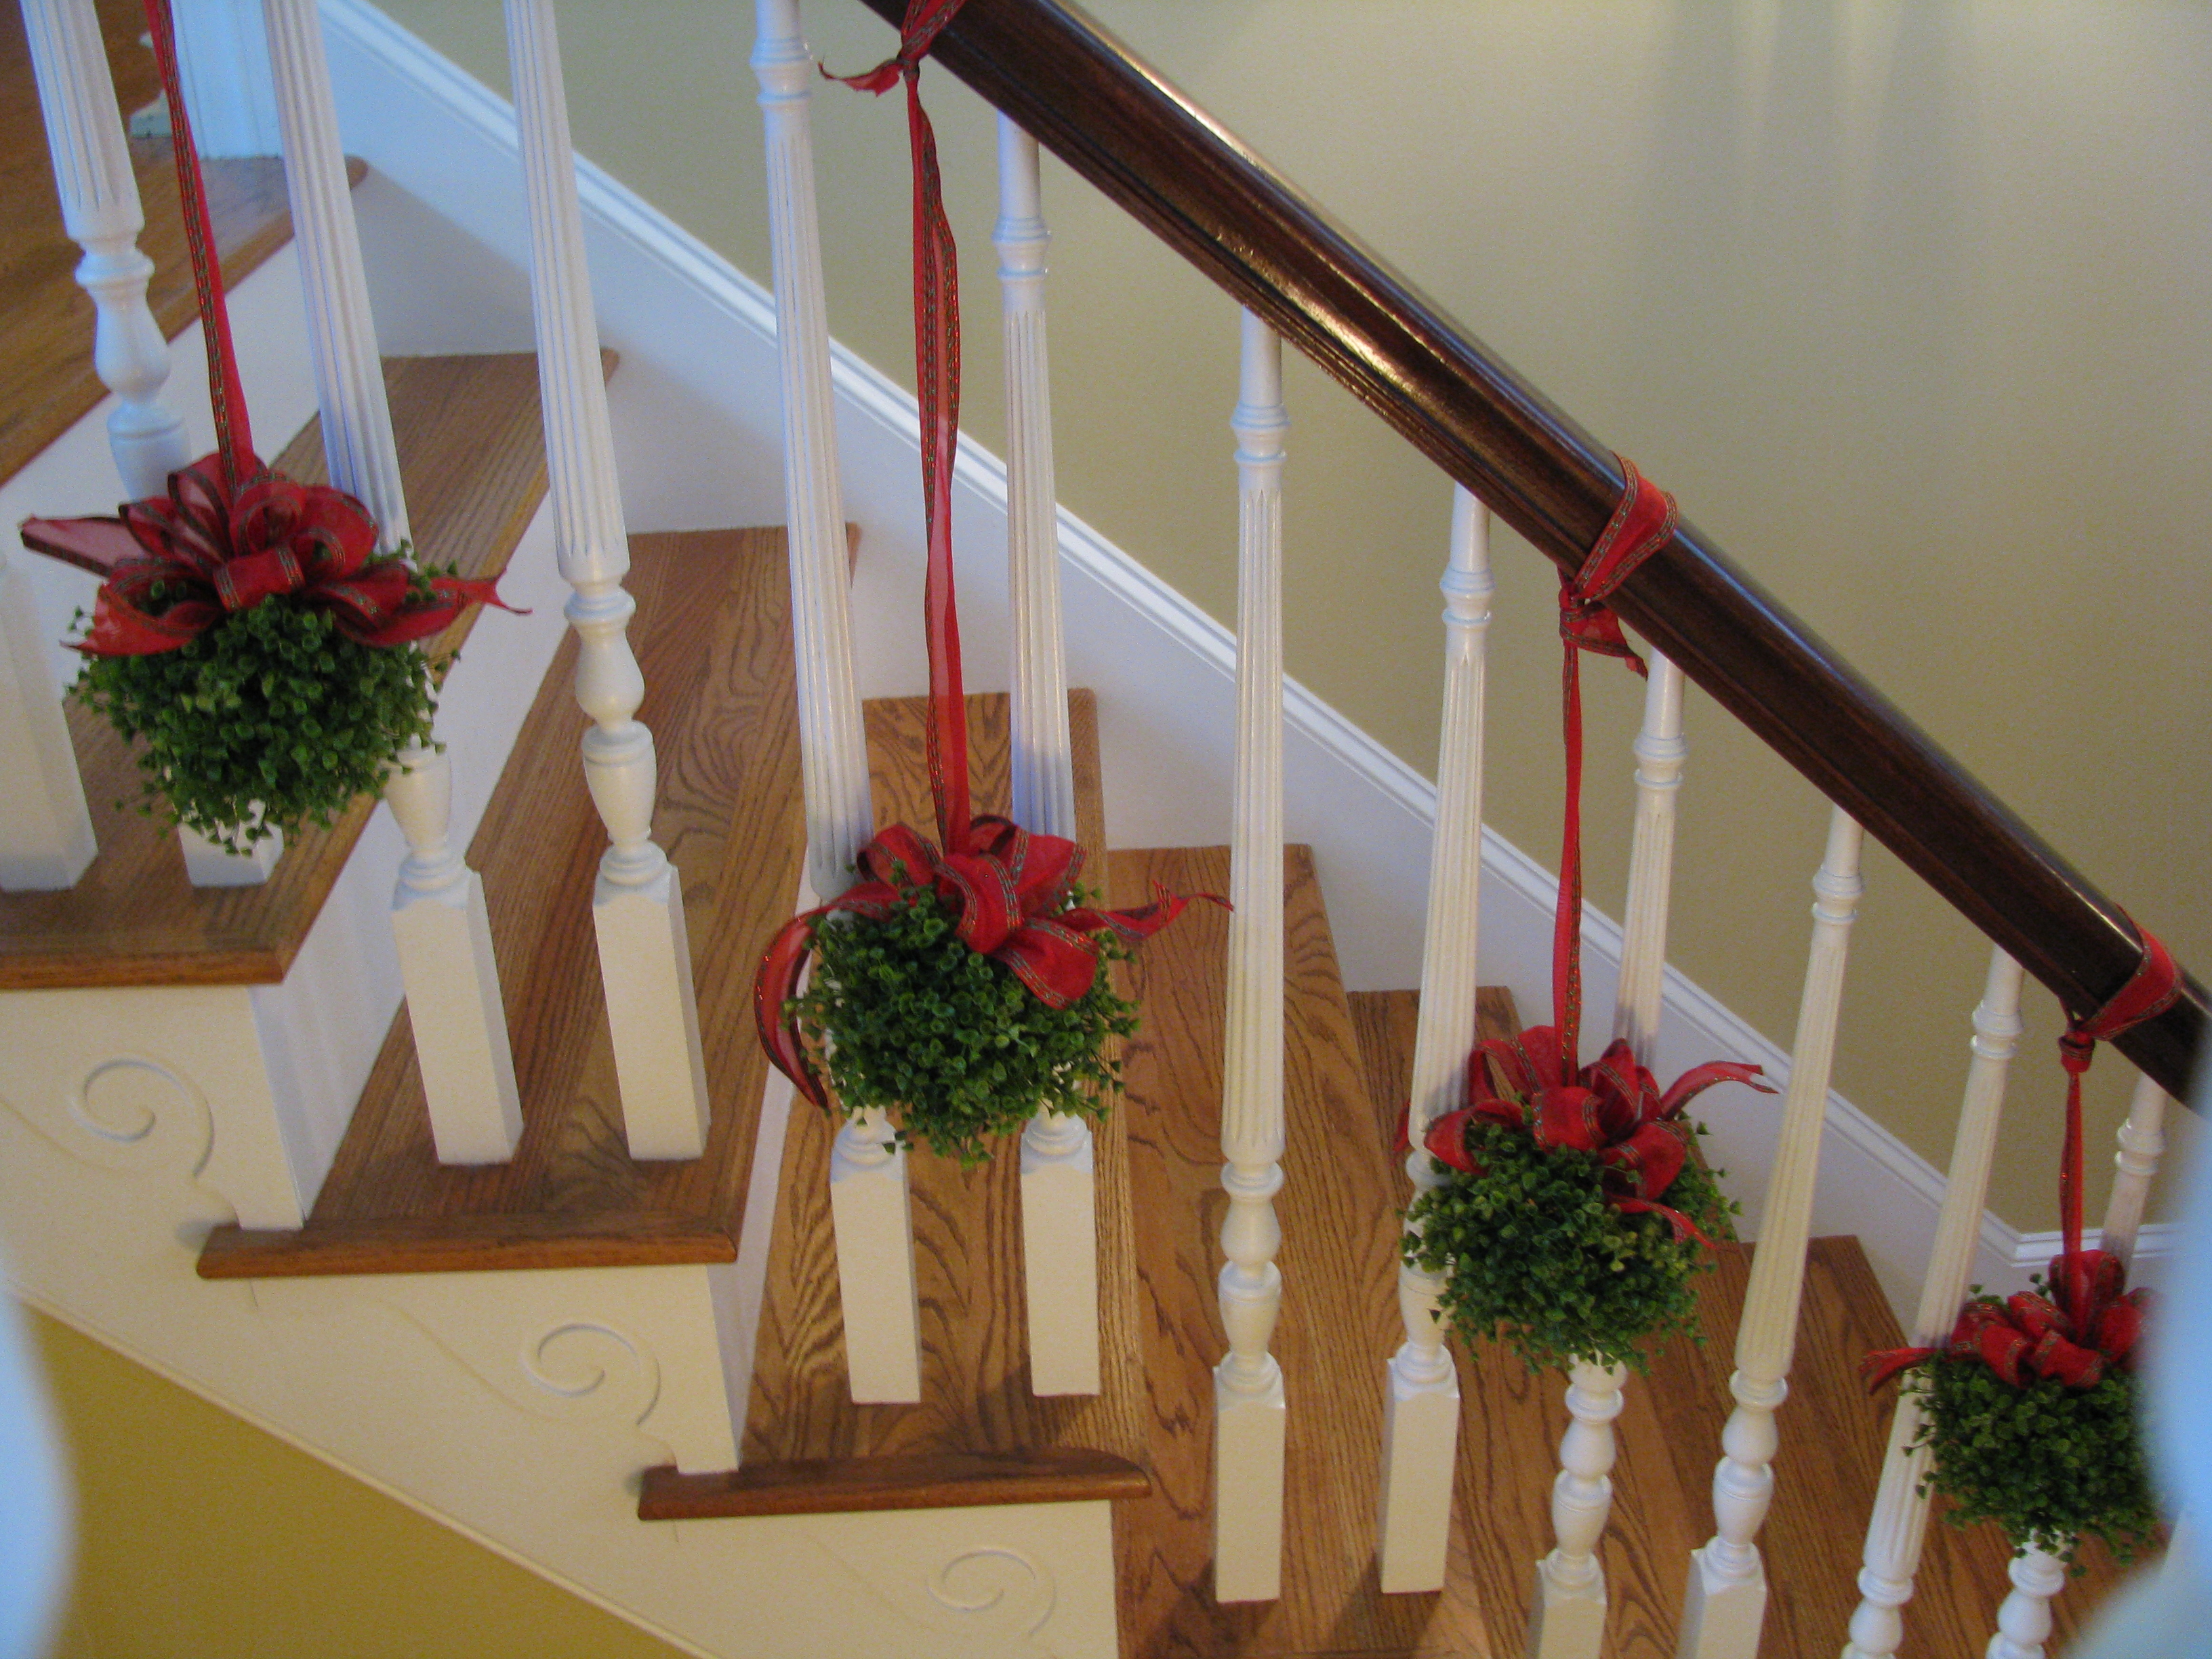 Topiaries on the stairs